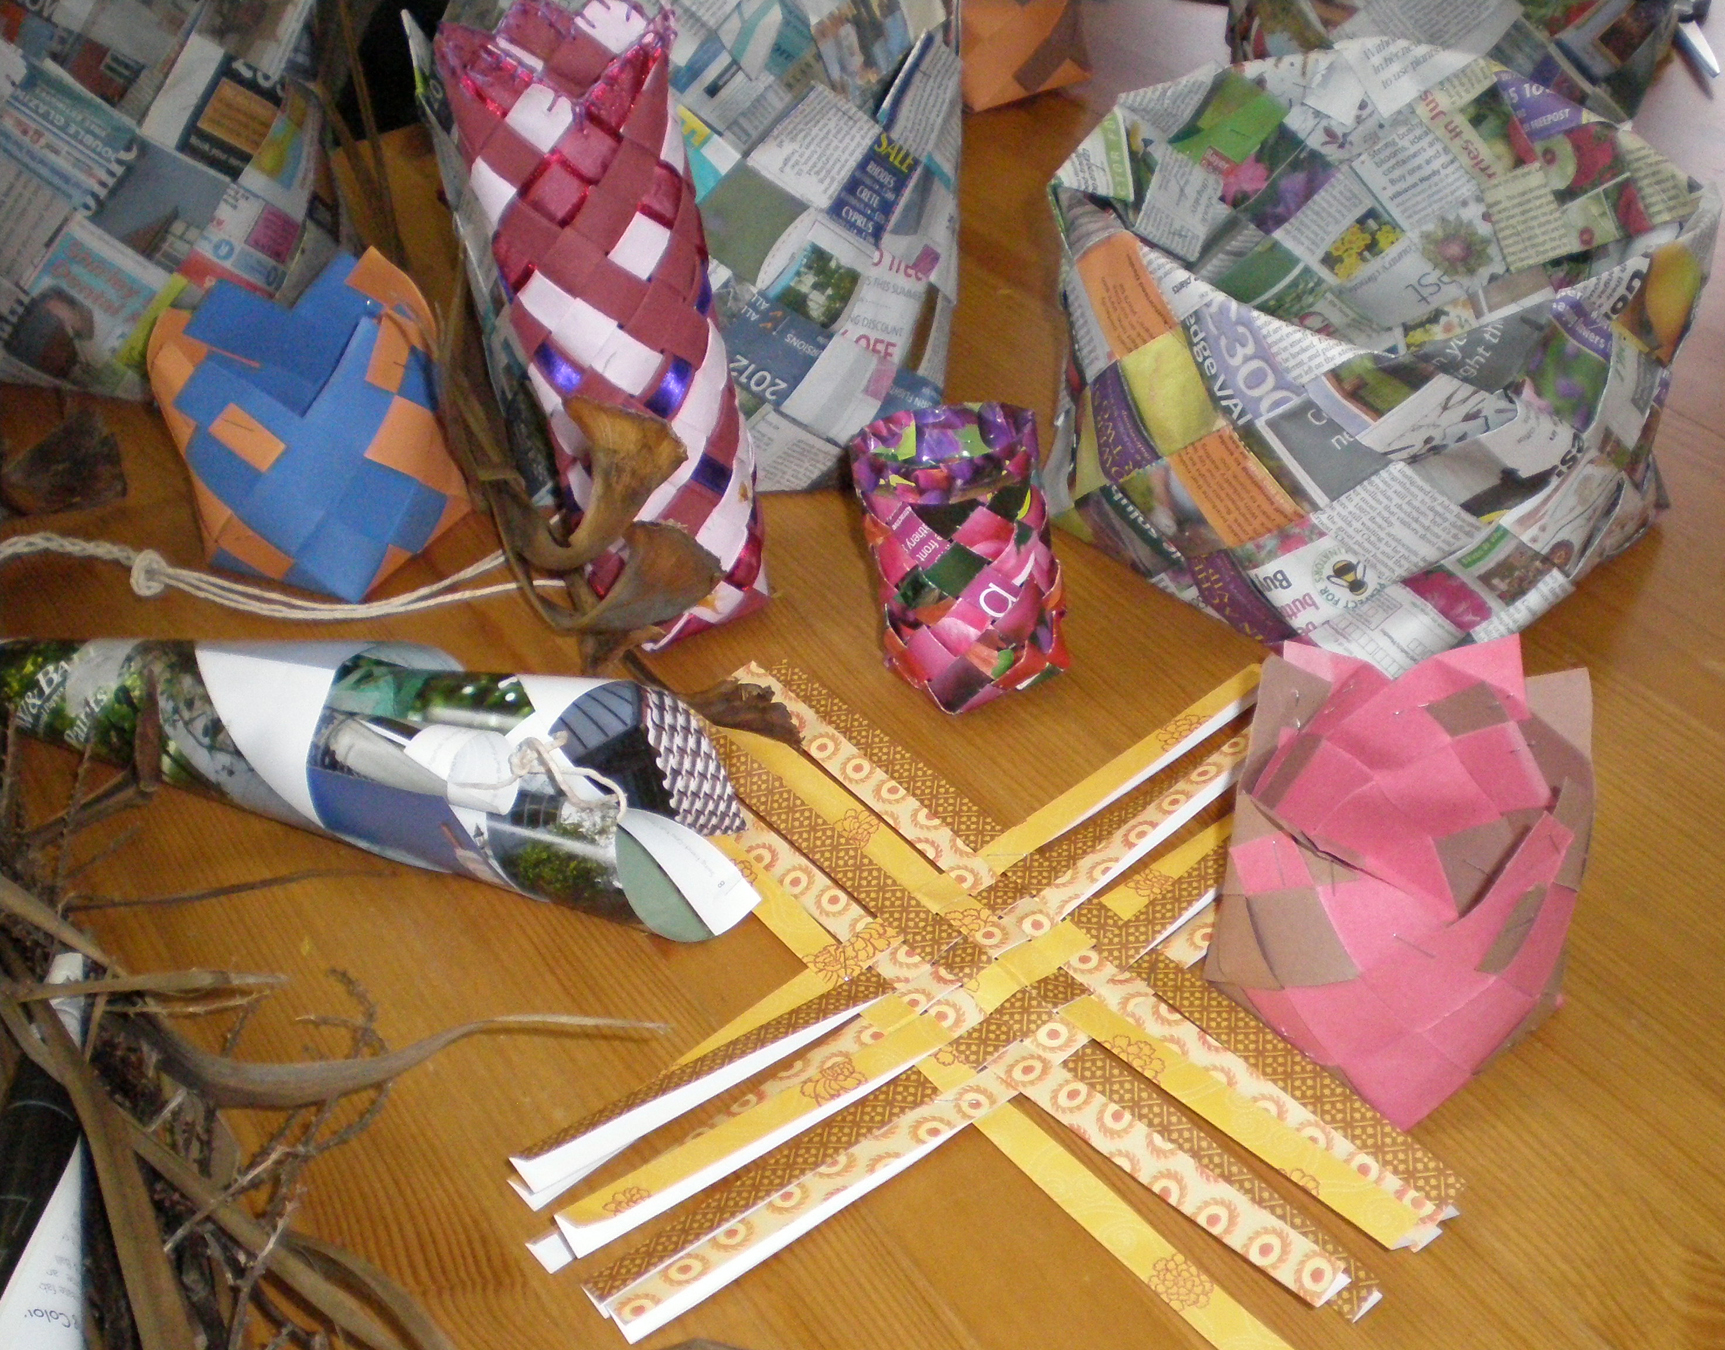 A selection of baskets